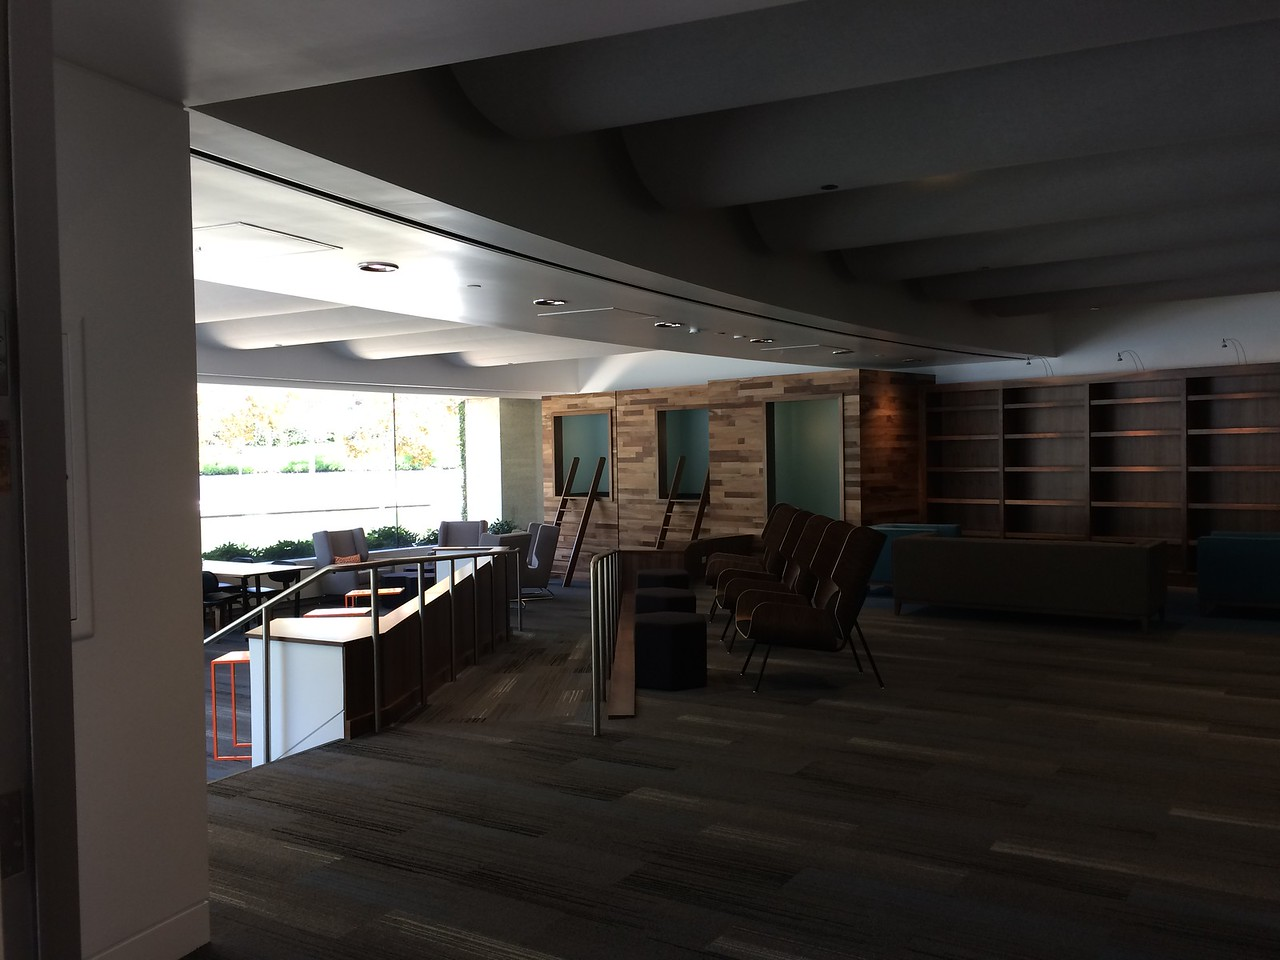 Next to the food court dining area is the library.